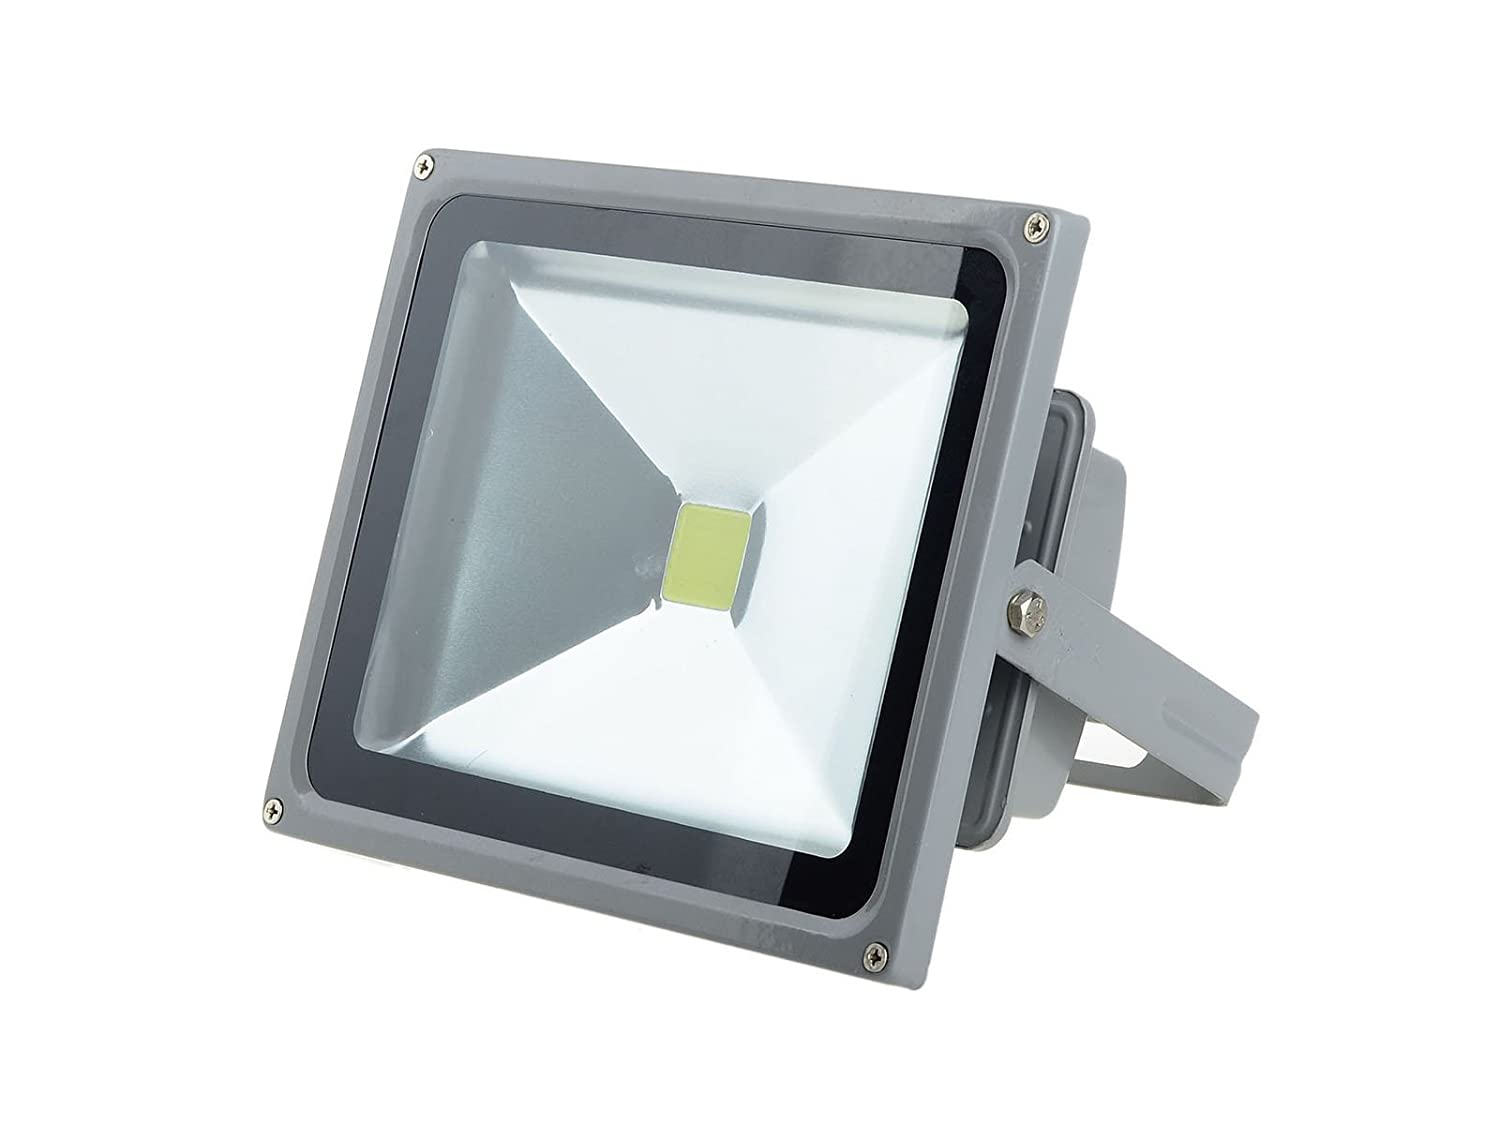 10 watt led waterpoof outdoor security floodlight 50w halogen equivalent ebay. Black Bedroom Furniture Sets. Home Design Ideas